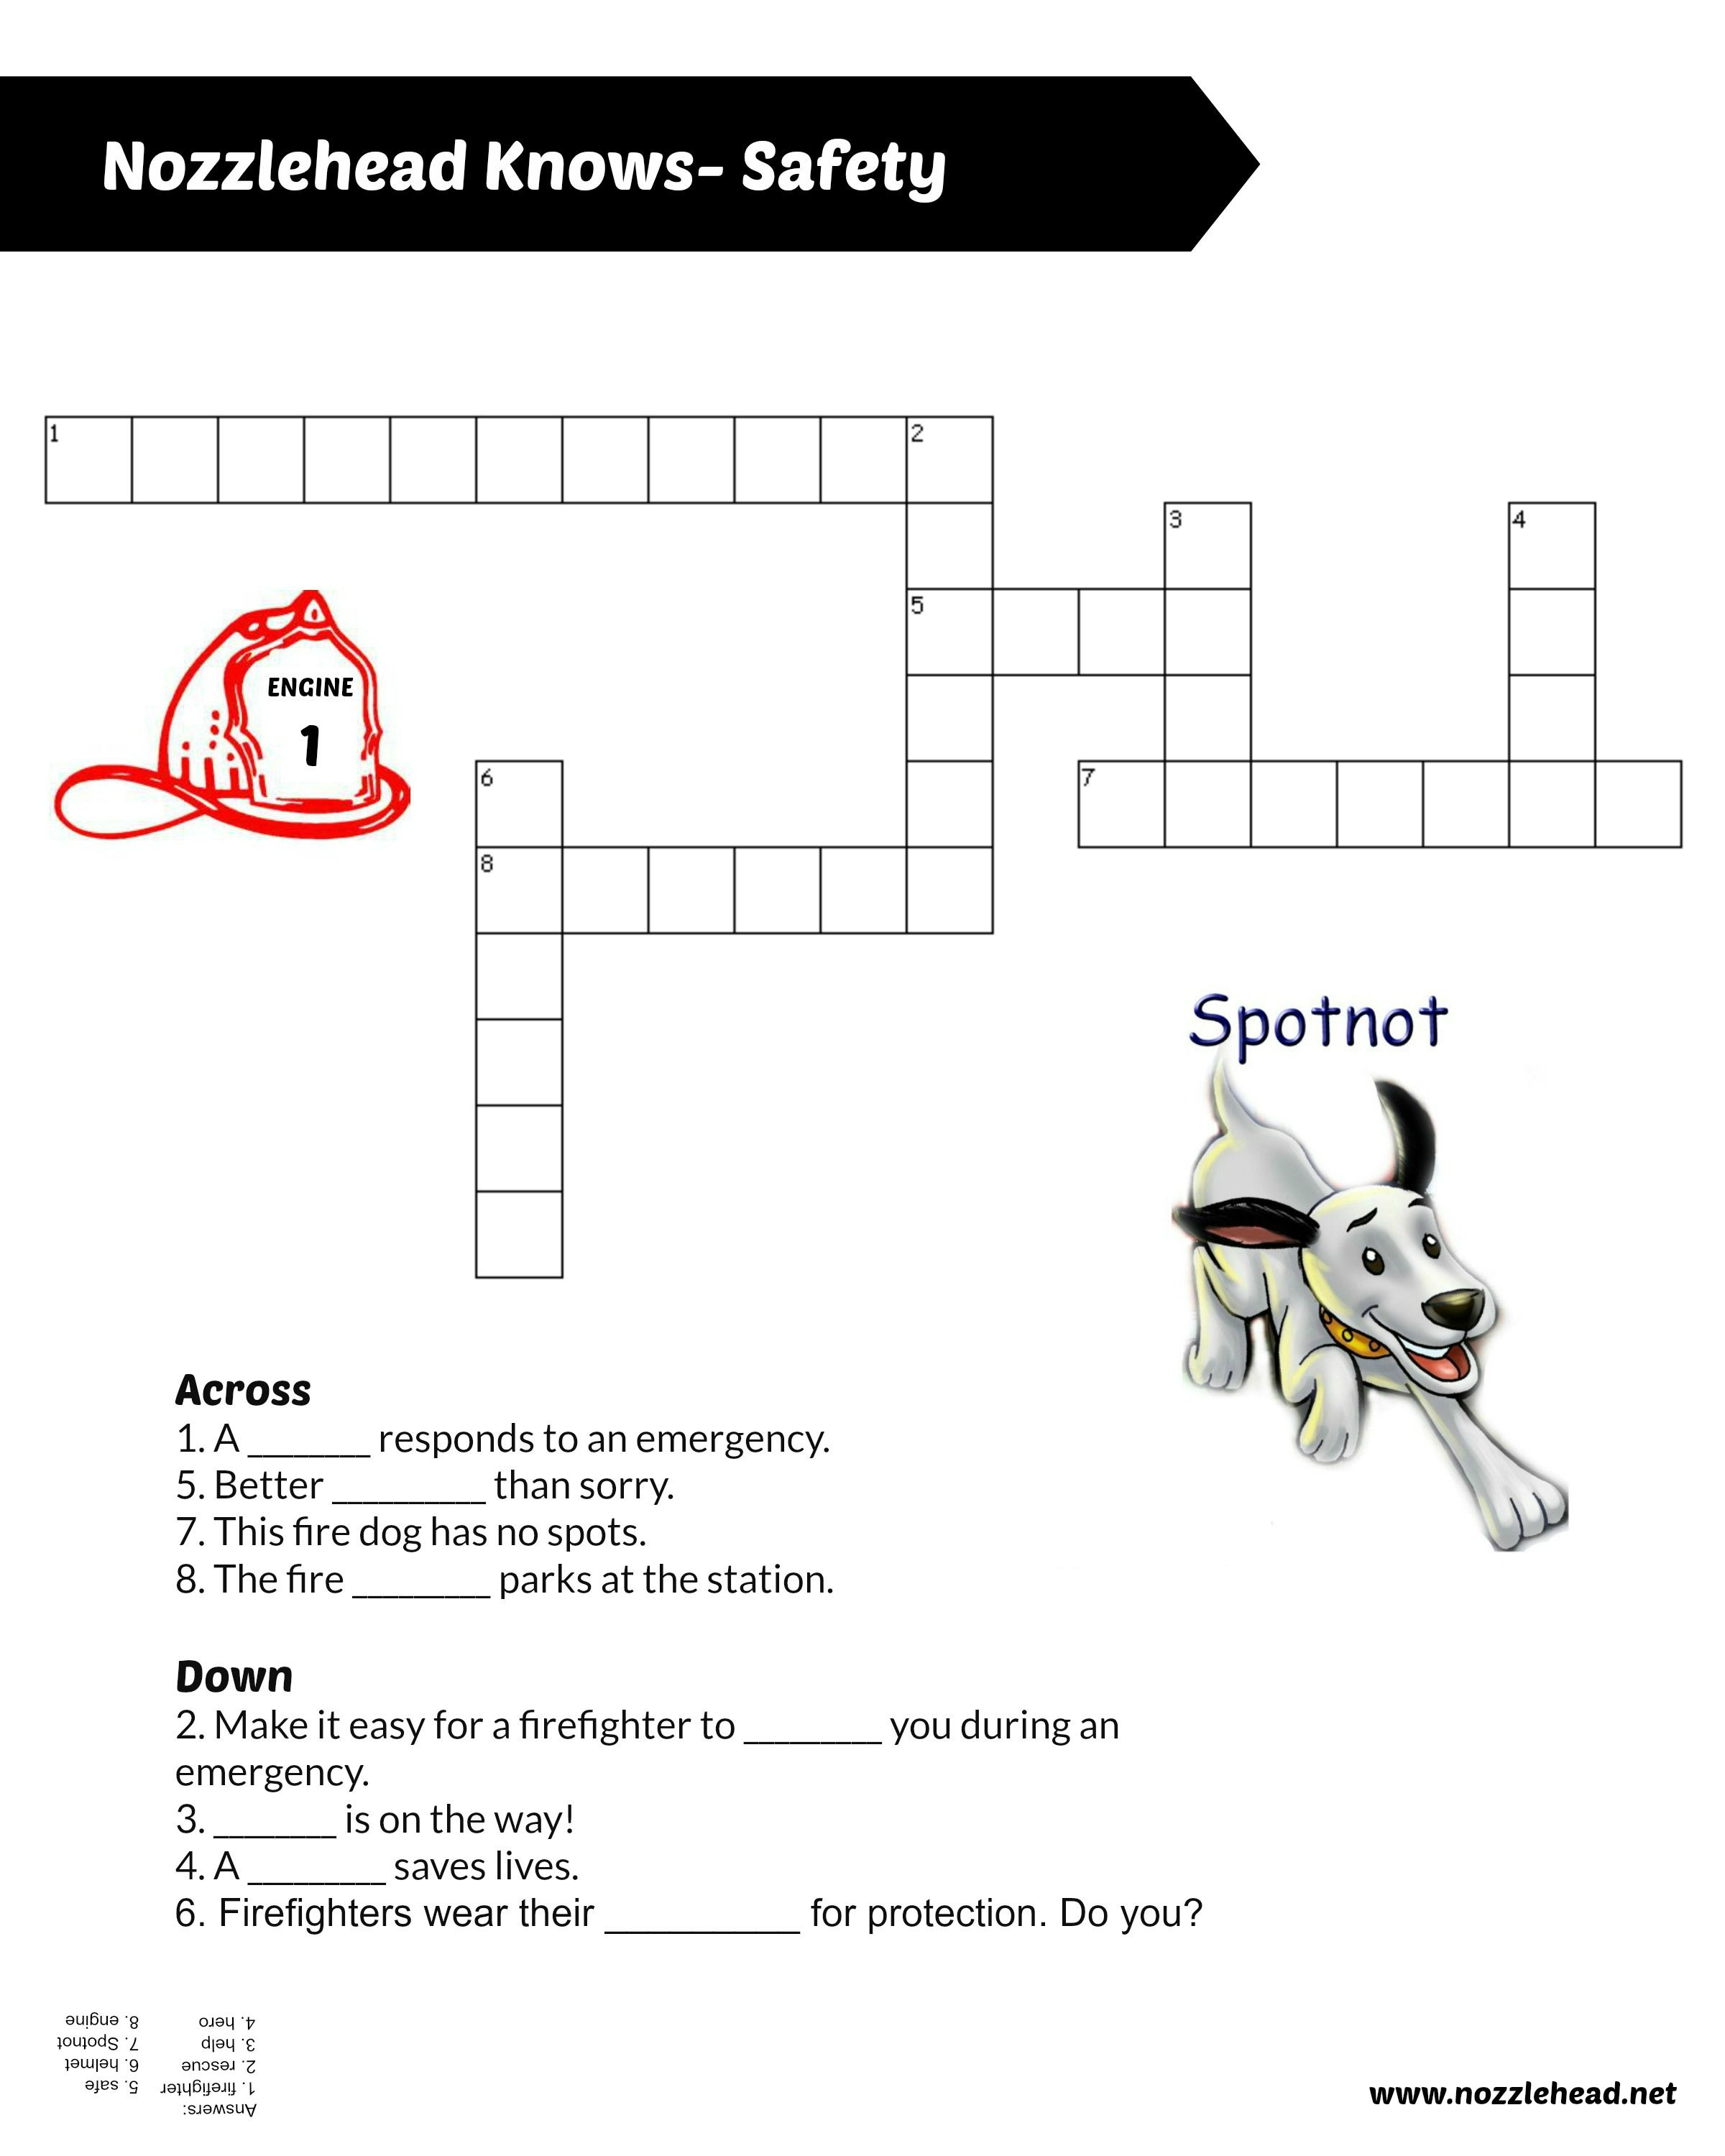 Nozzlehead Knows Safety Firefighter Crossword Puzzle For Your Little Firefighter Fan Book Activities Firefighter Crossword Puzzle [ 3000 x 2400 Pixel ]